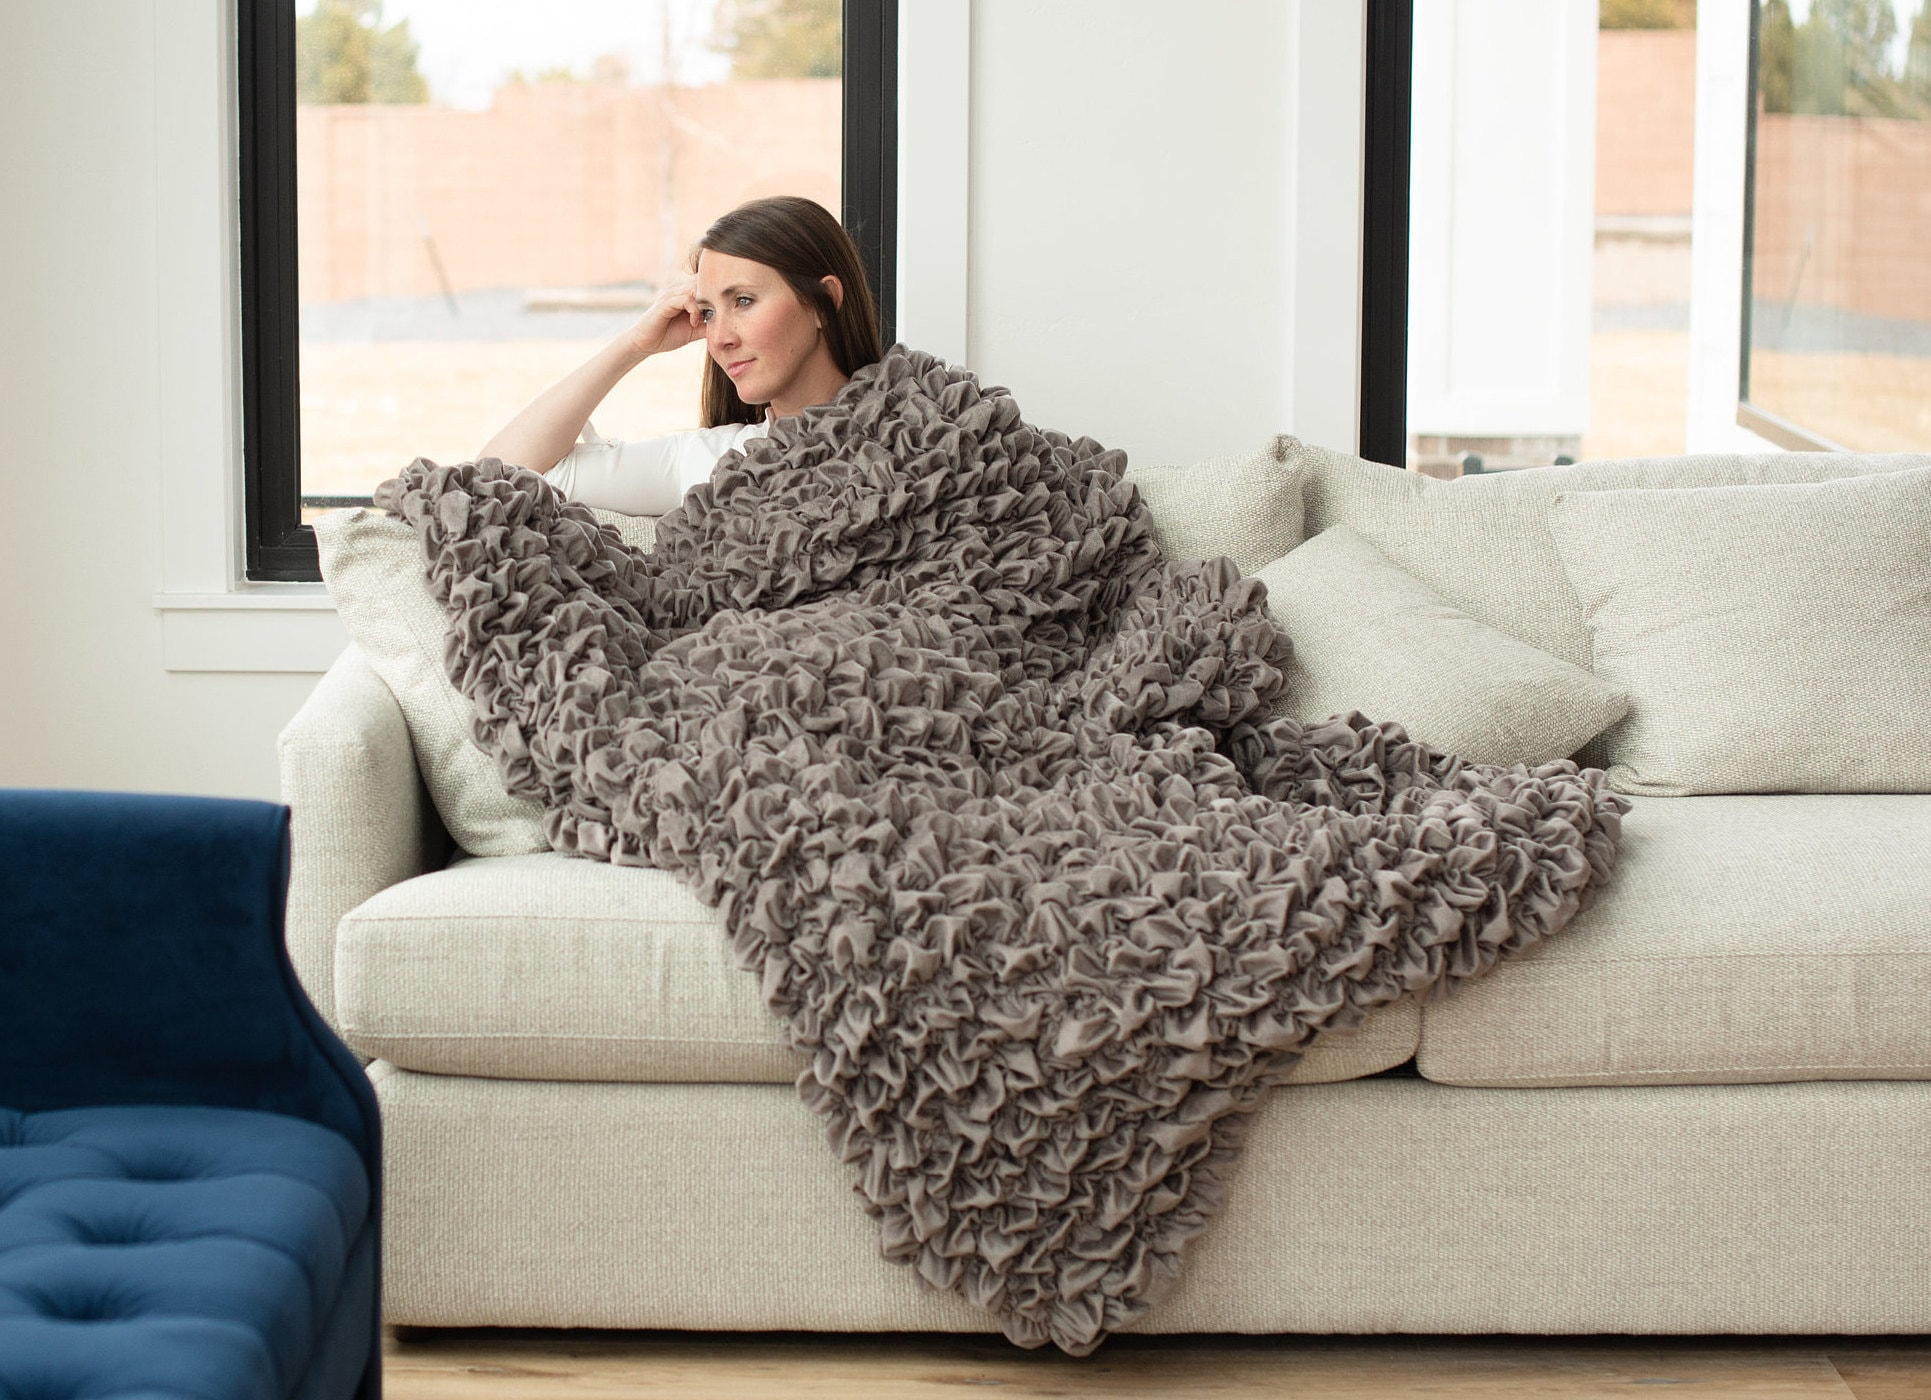 Albrea Handmade Gray Luxury Throw in 3 Tailles - Best Unique Home Decor Designer Blanket. Perfect Plush, Soft Haut de gamme Cadeau, Calmes Anxiété, Etats-Unis